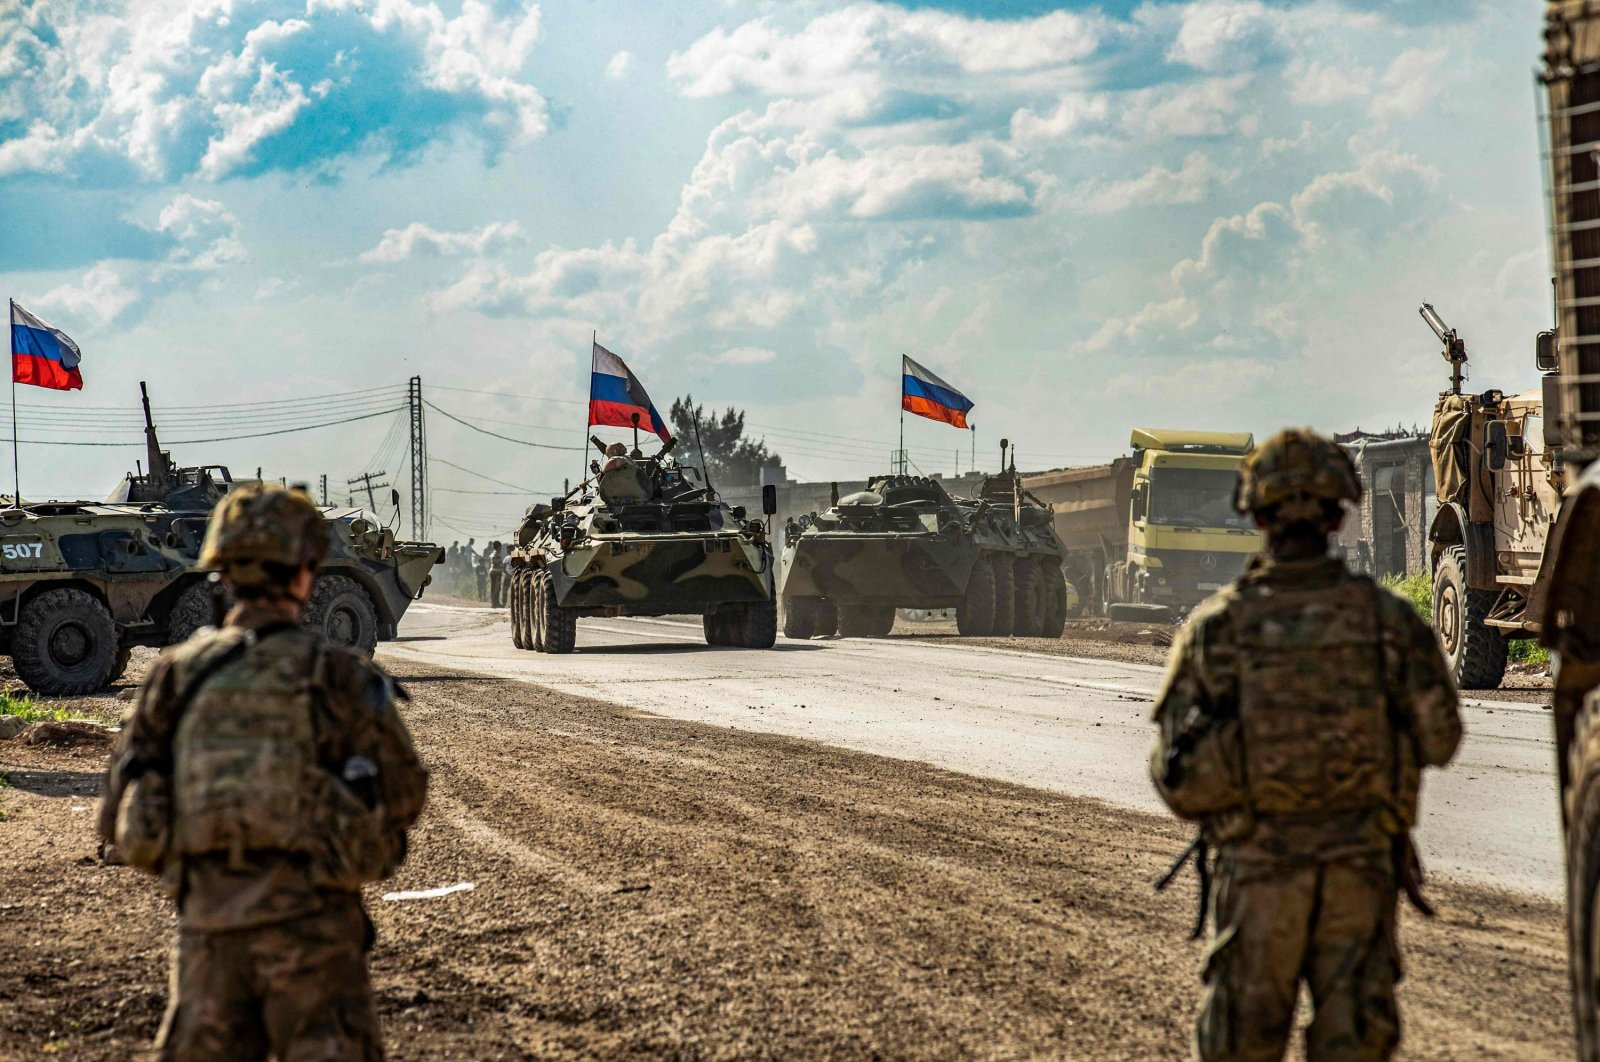 U.S. soldiers stand along a road across from Russian military armored personnel carriers (APCs), near the village of Tannuriyah in the countryside east of Qamishli, northeastern Hasakah province, Syria, on May 2, 2020. (AFP Photo)